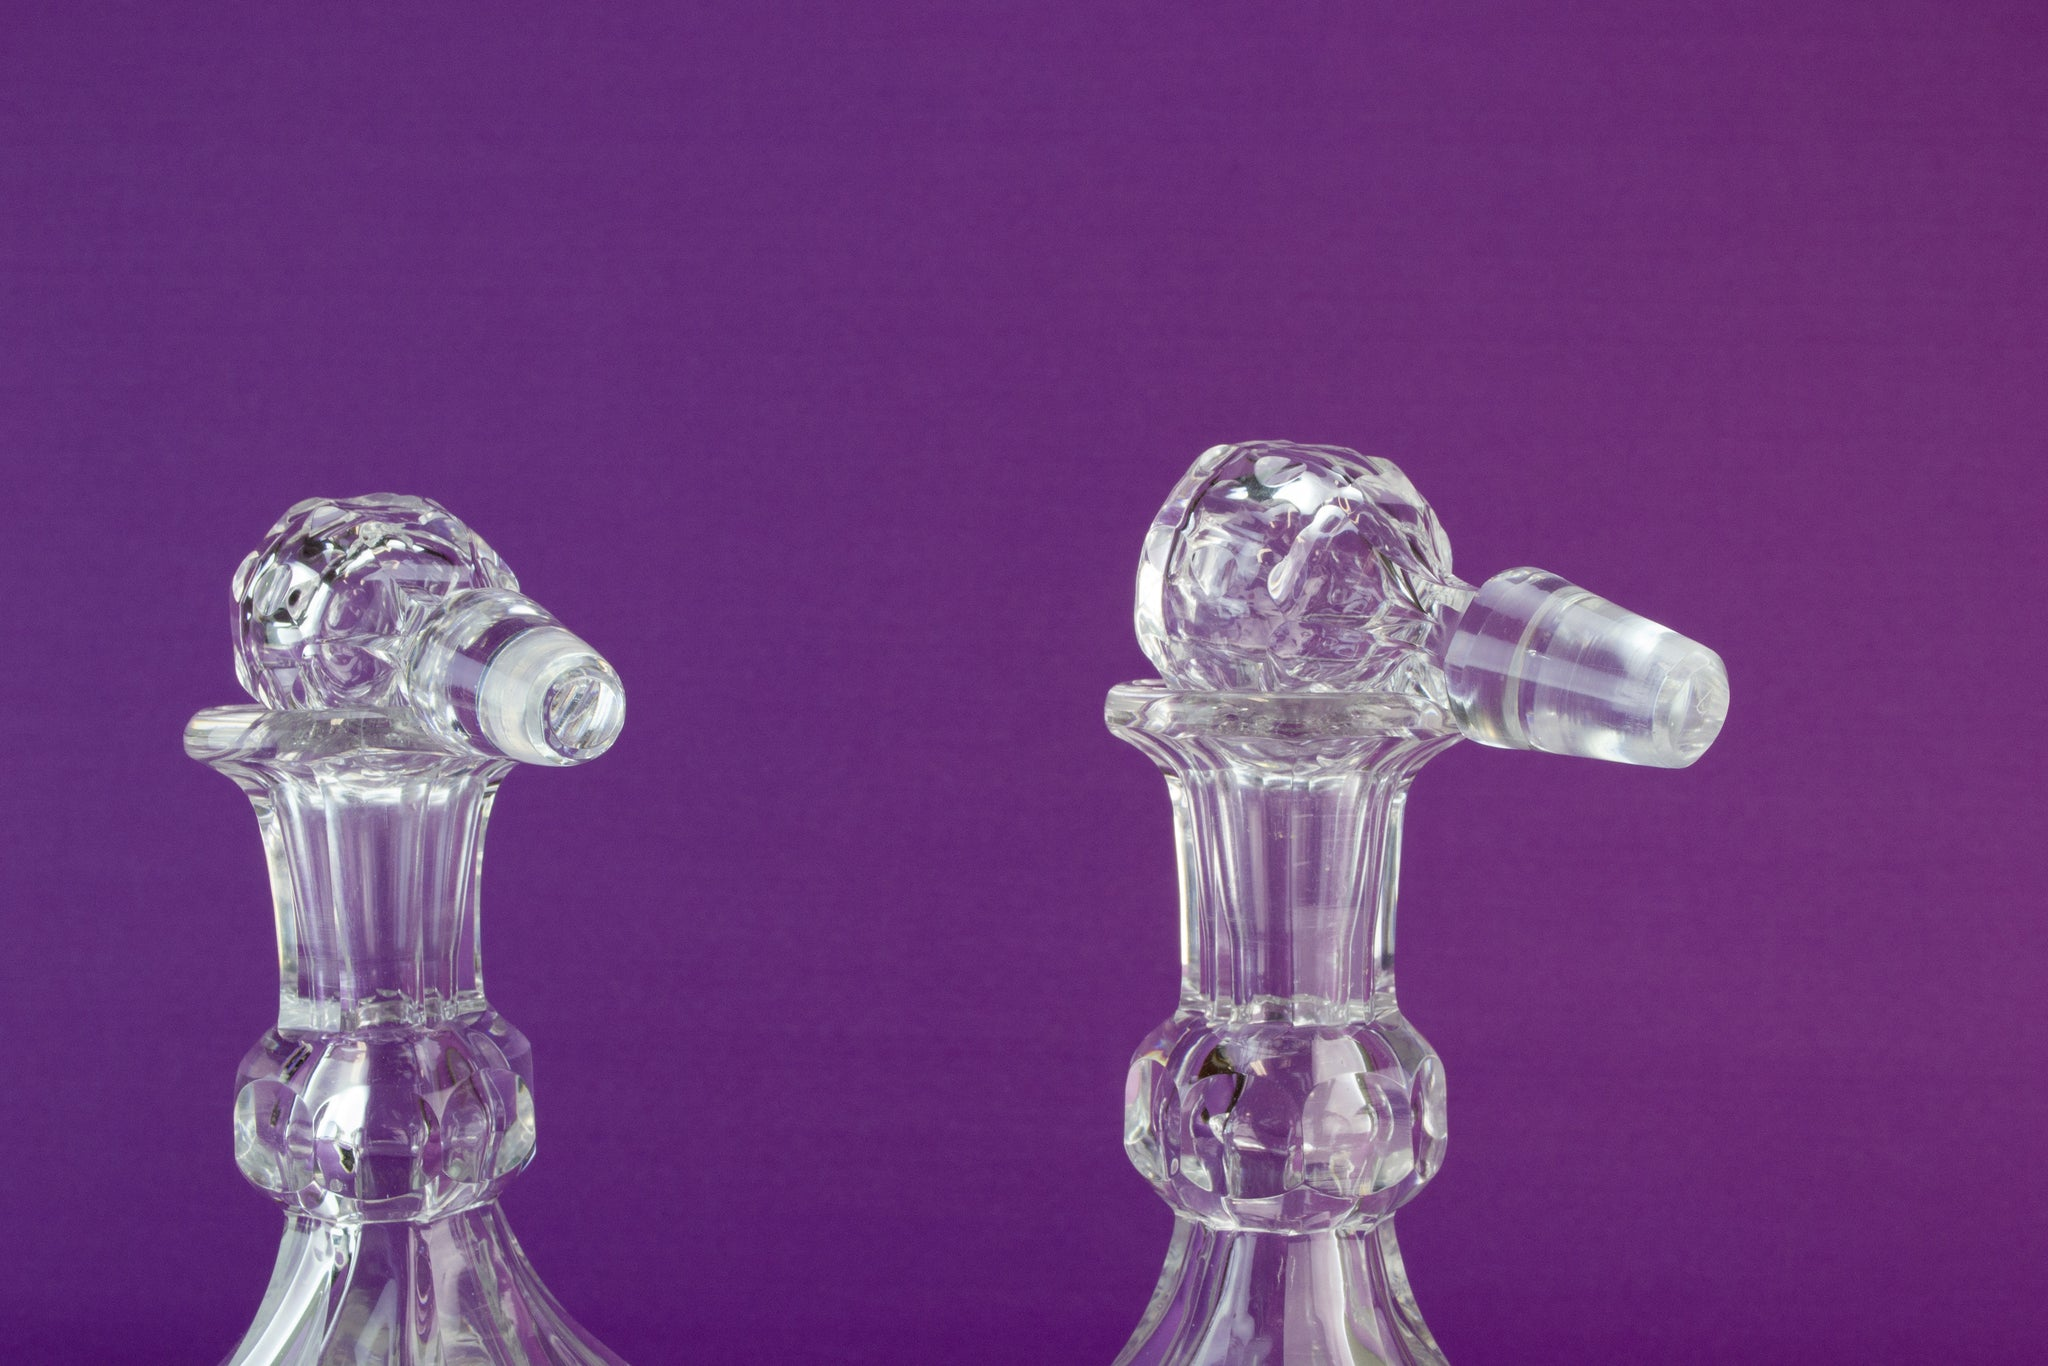 2 Stevens & Williams decanters, 1860s by Lavish Shoestring